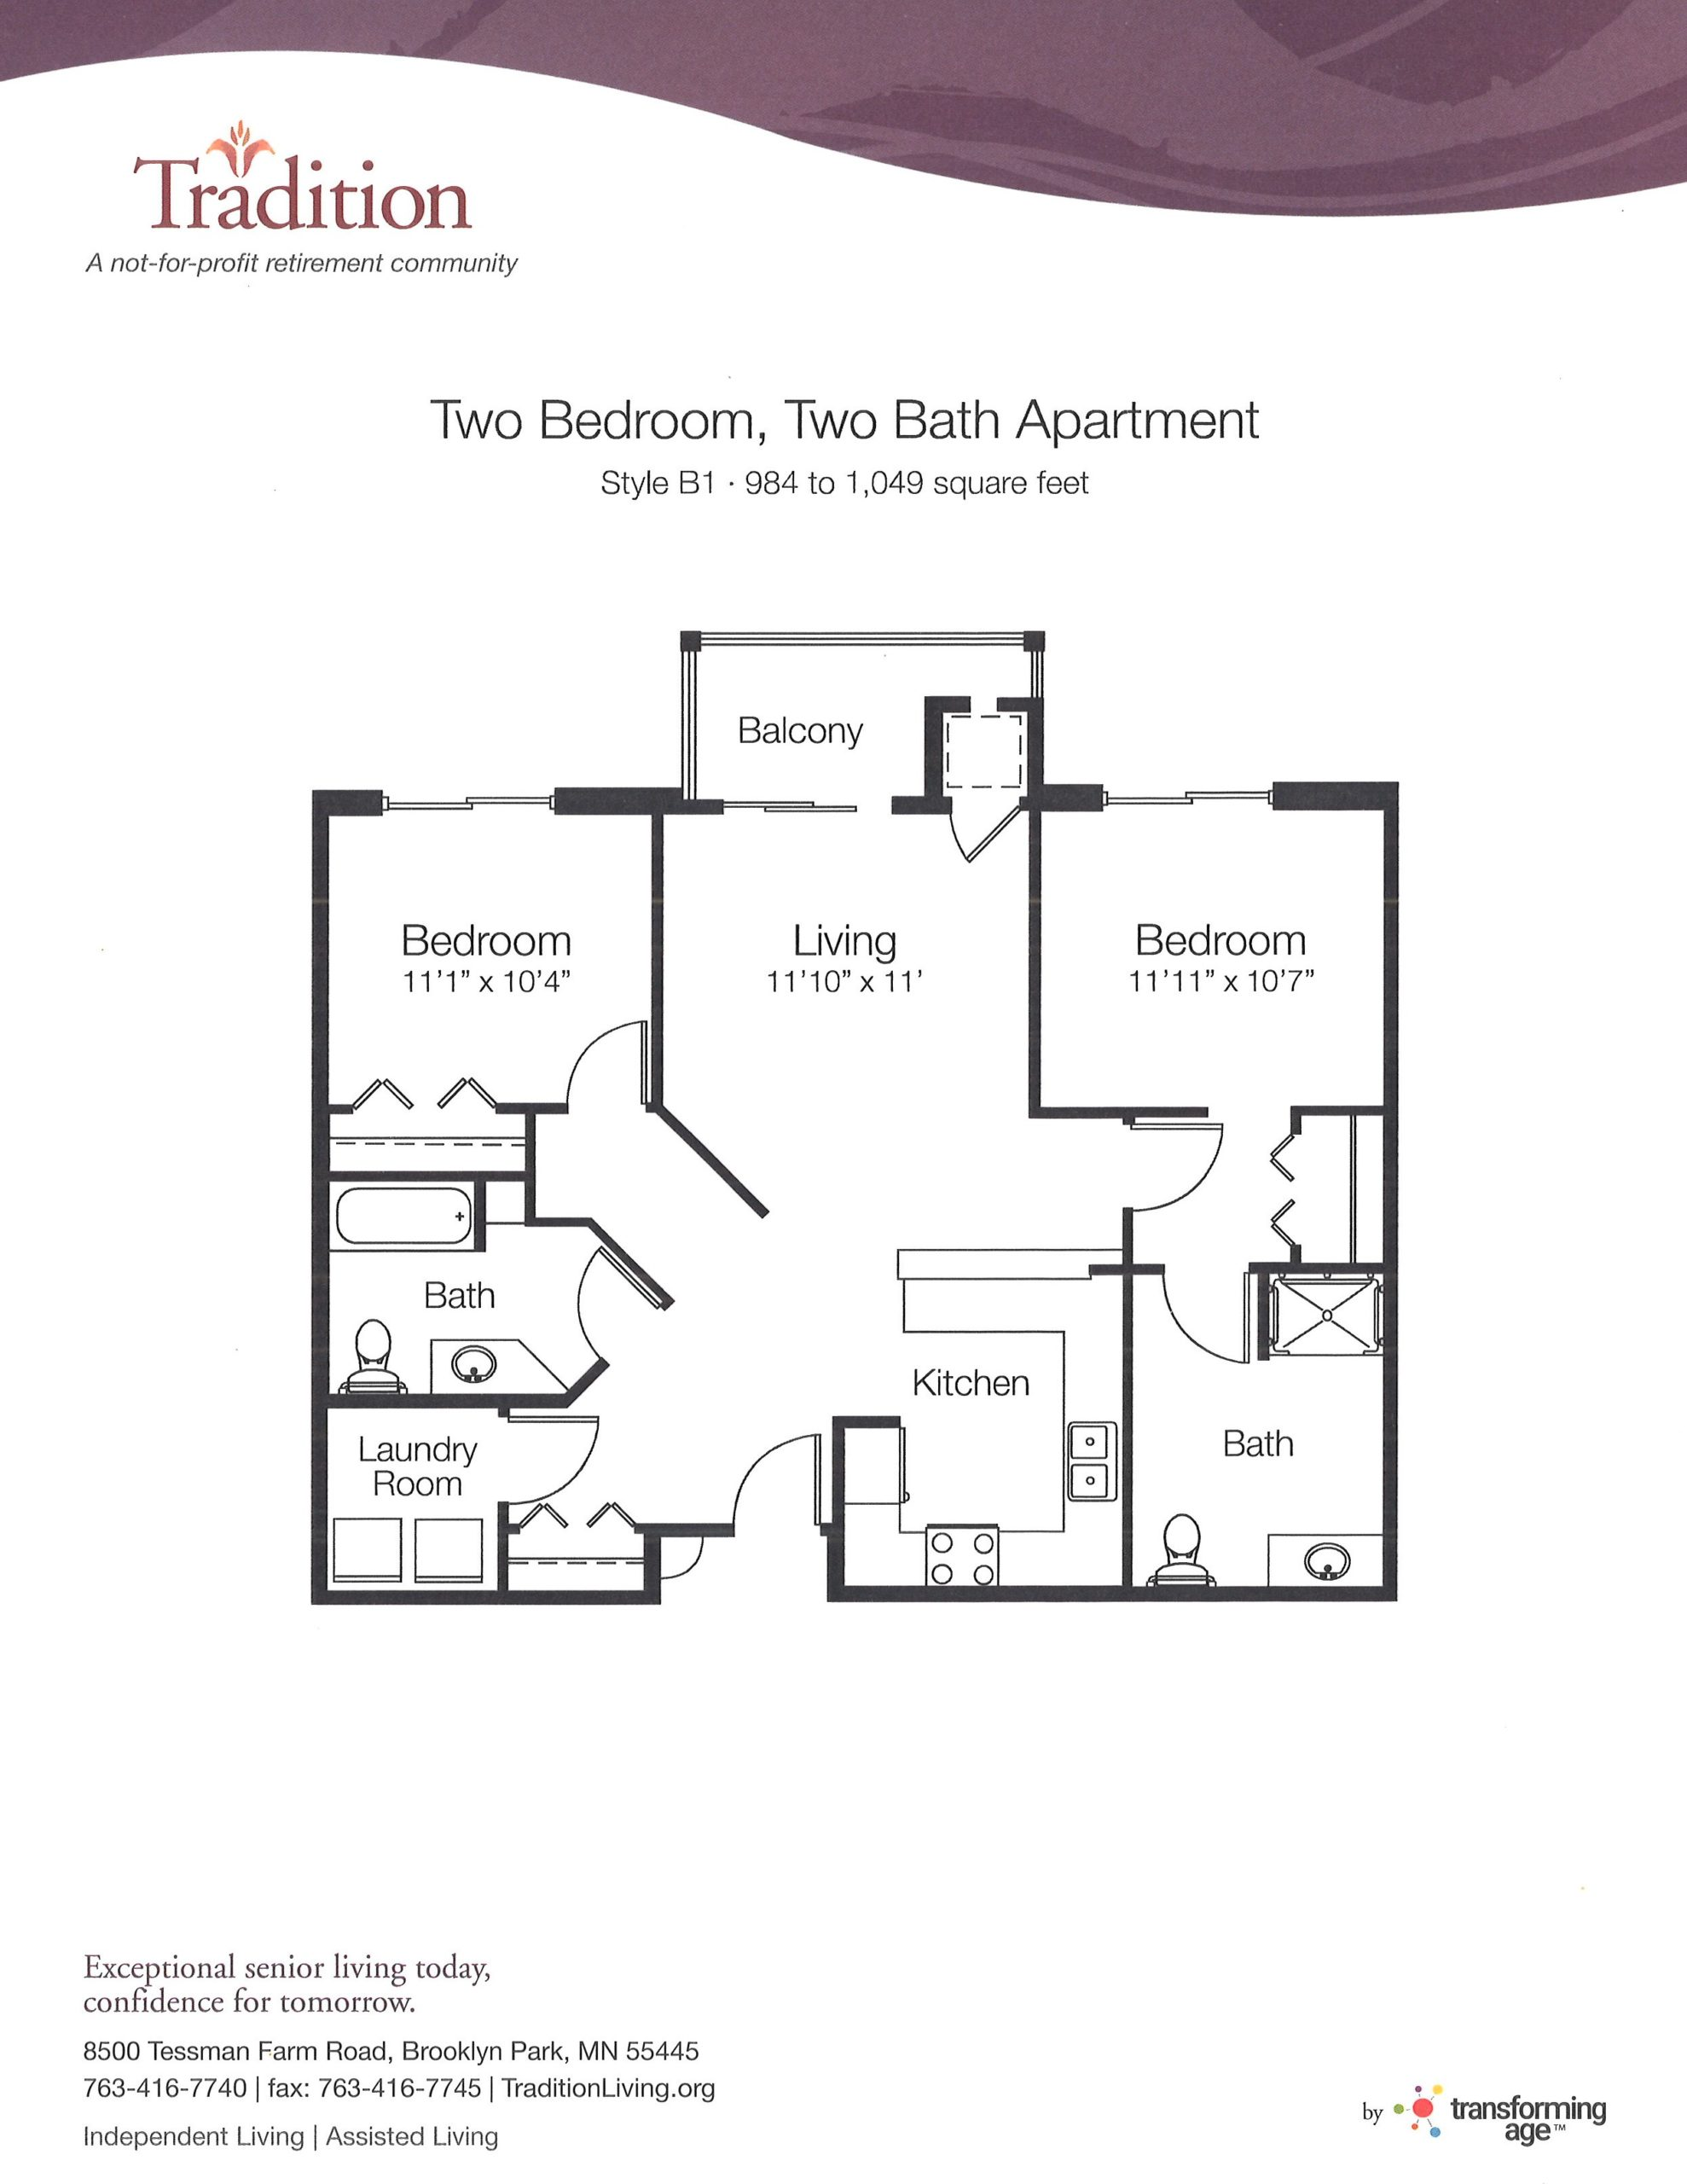 Two Bedroom with Two Bathrooms (B1)